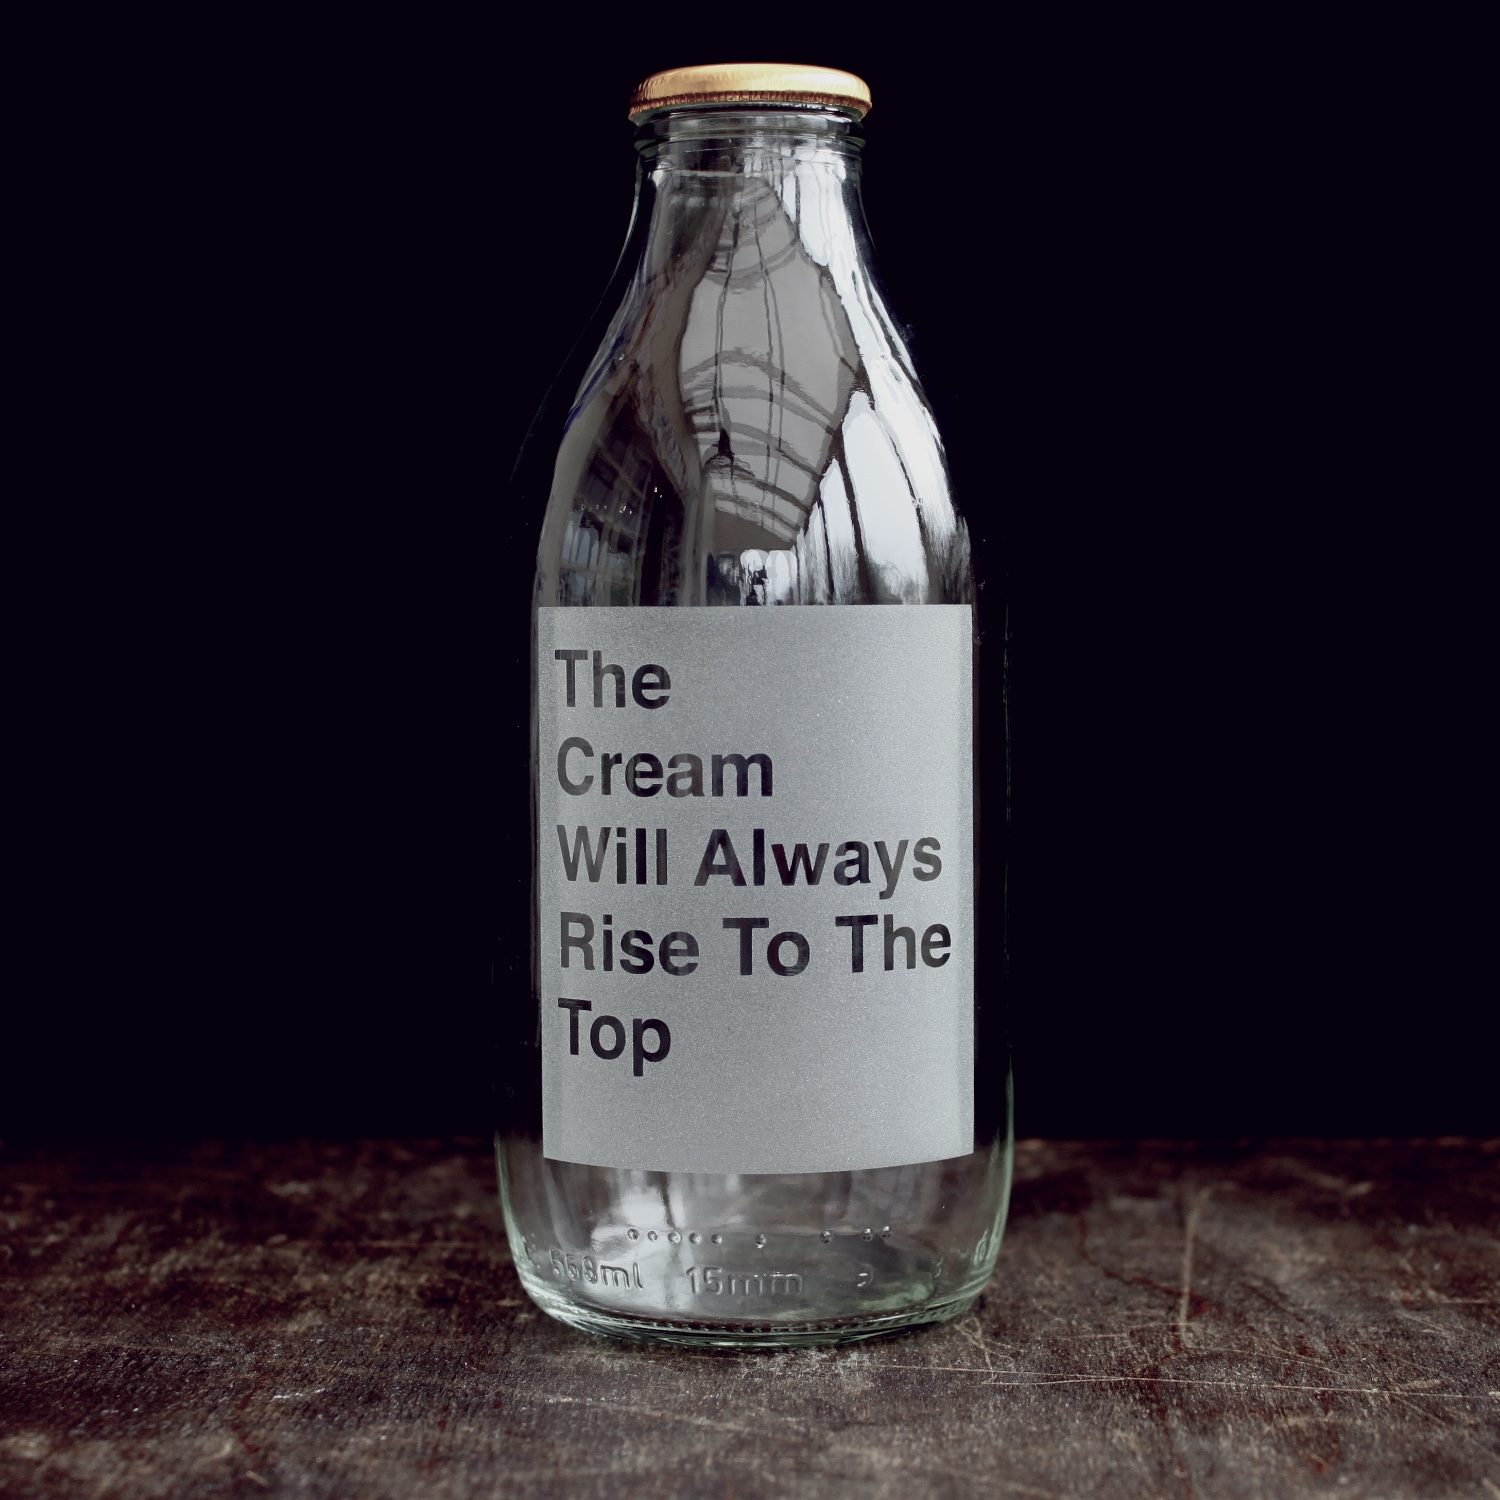 the-cream-will-always-rise-to-the-top-etched-milk-bottle-vinegar-and-brown-paper.jpg